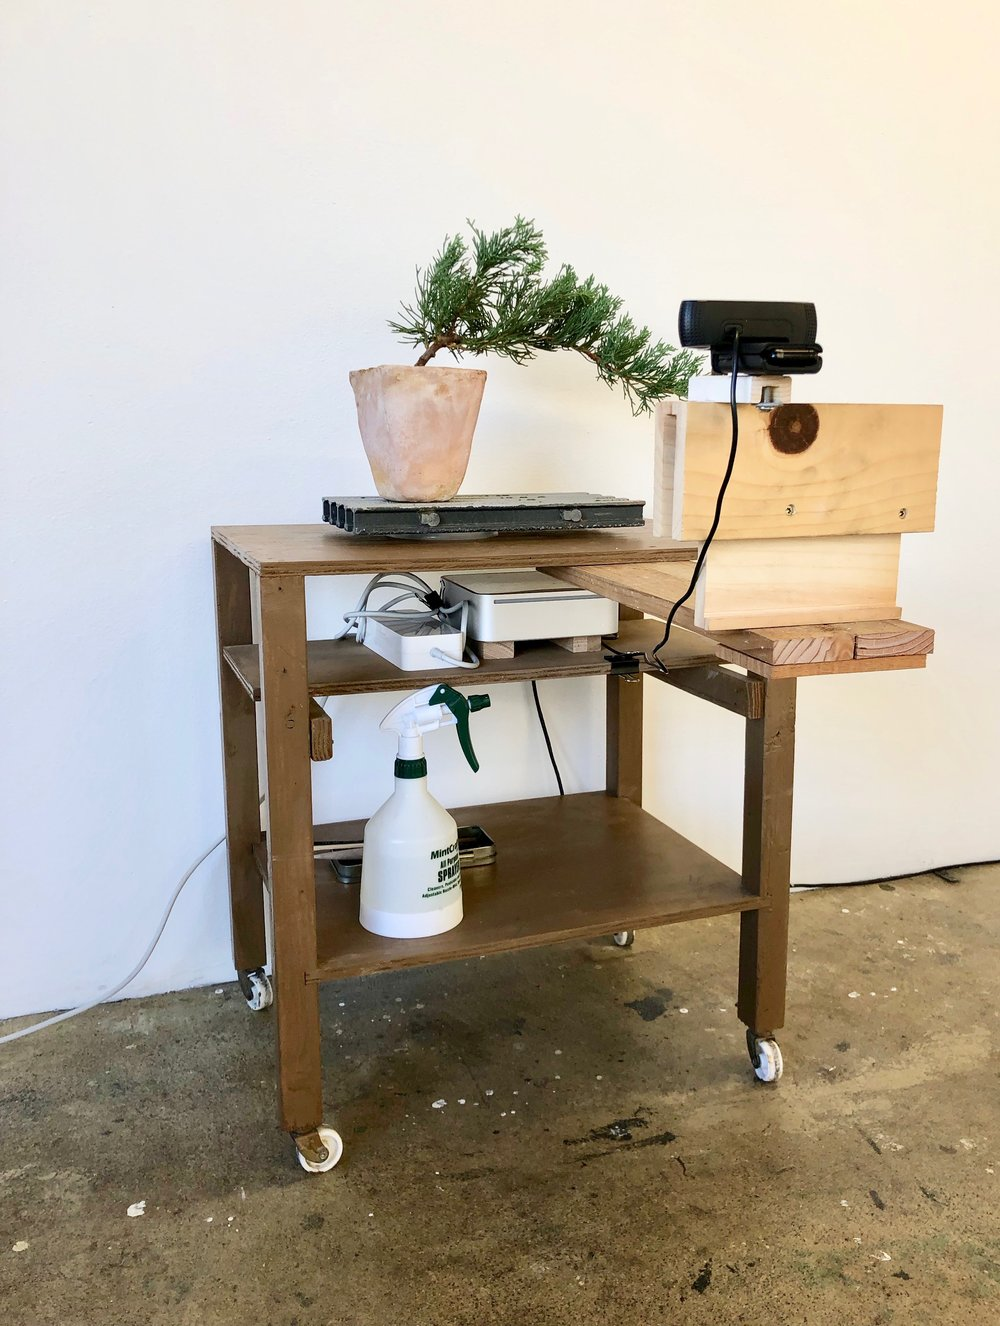 Bonsai Livestream, 2018, Cody Anderson